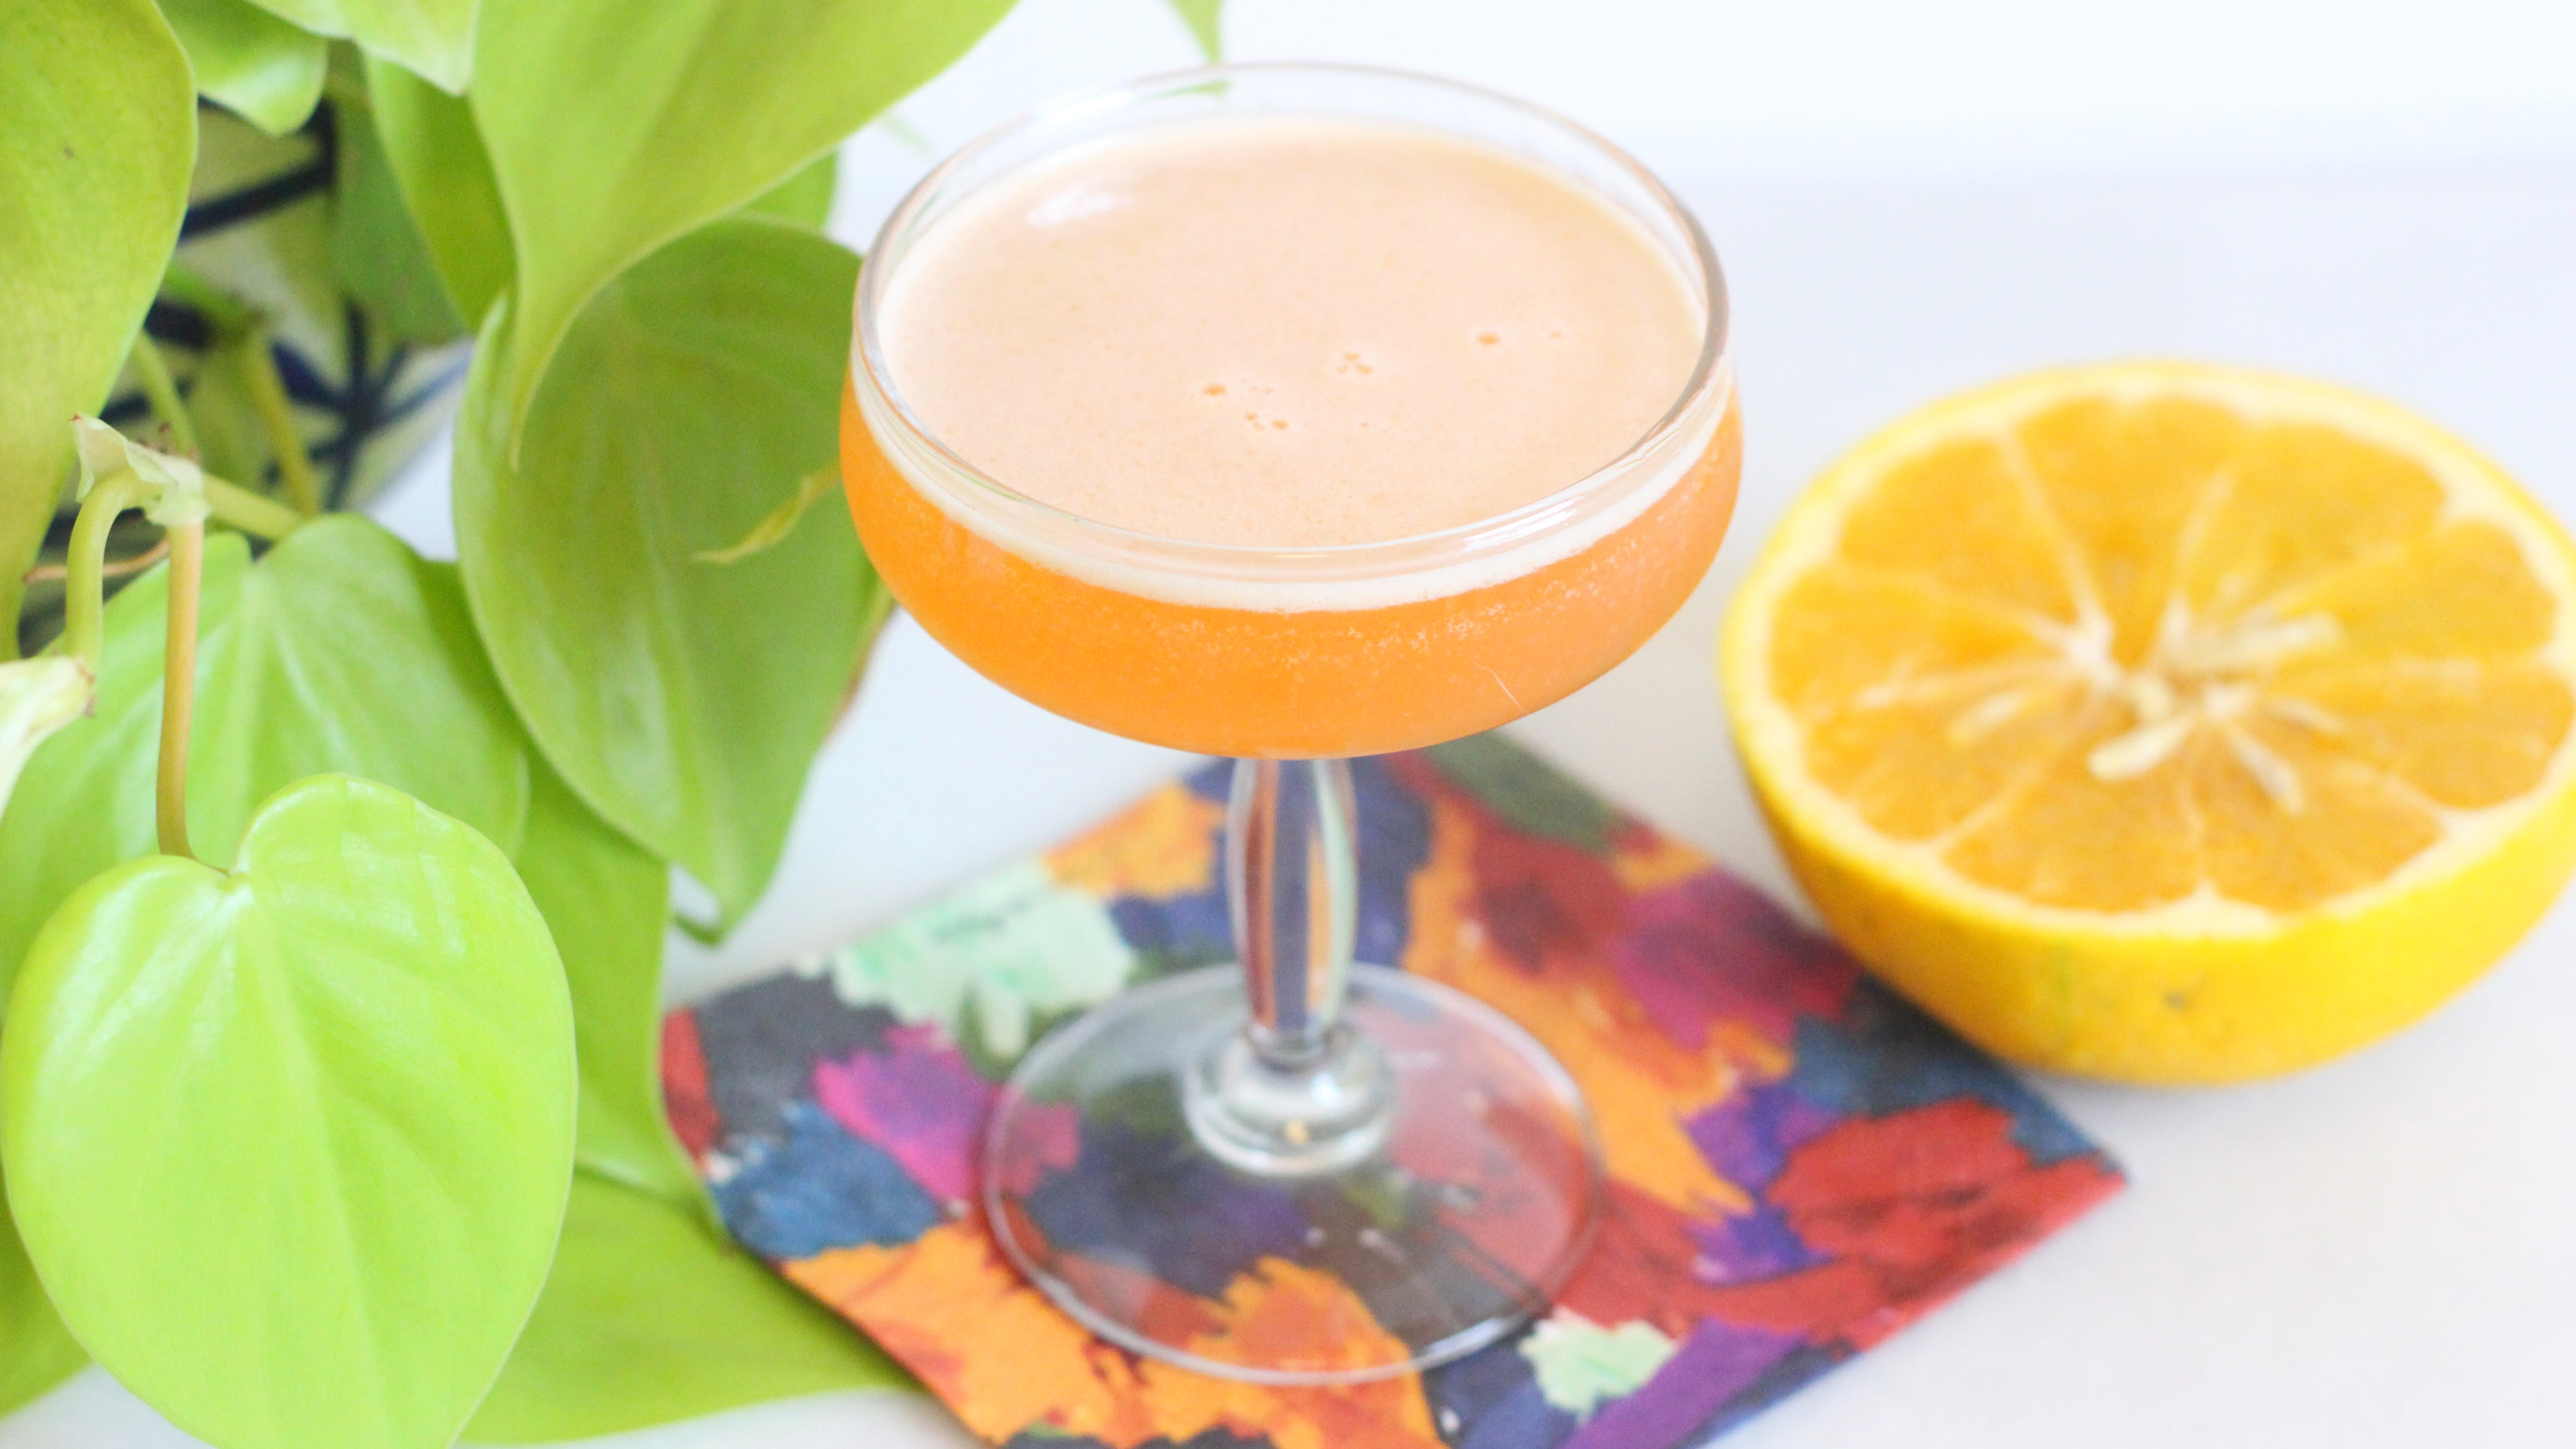 Enjoy The Refreshing Taste Of Citrus With This Cocktail